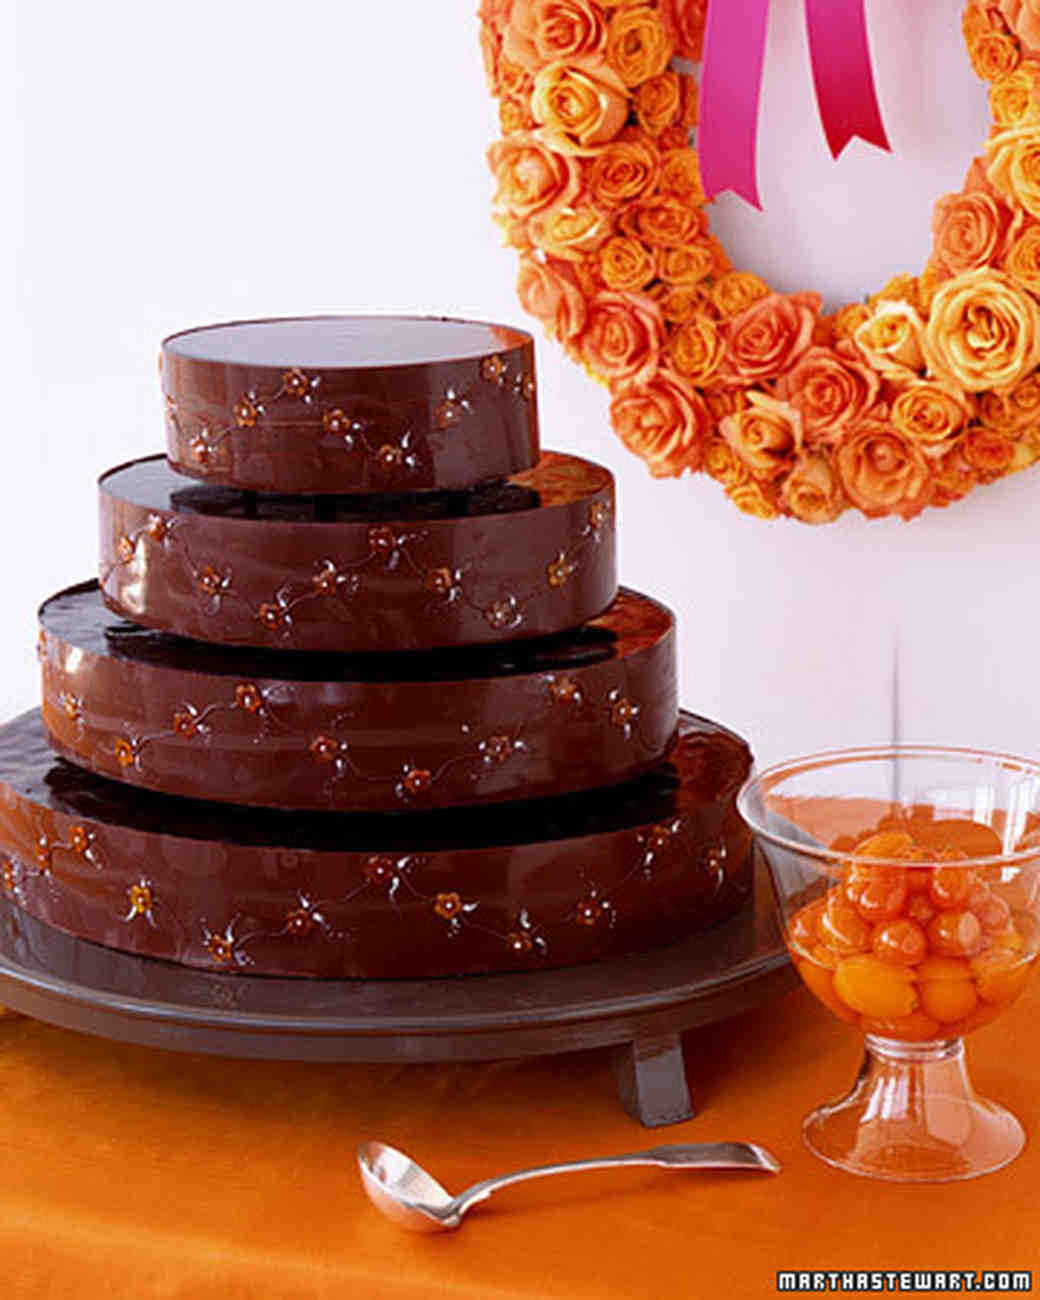 Chocolate Cakes: Chocolate Kumquat Cake